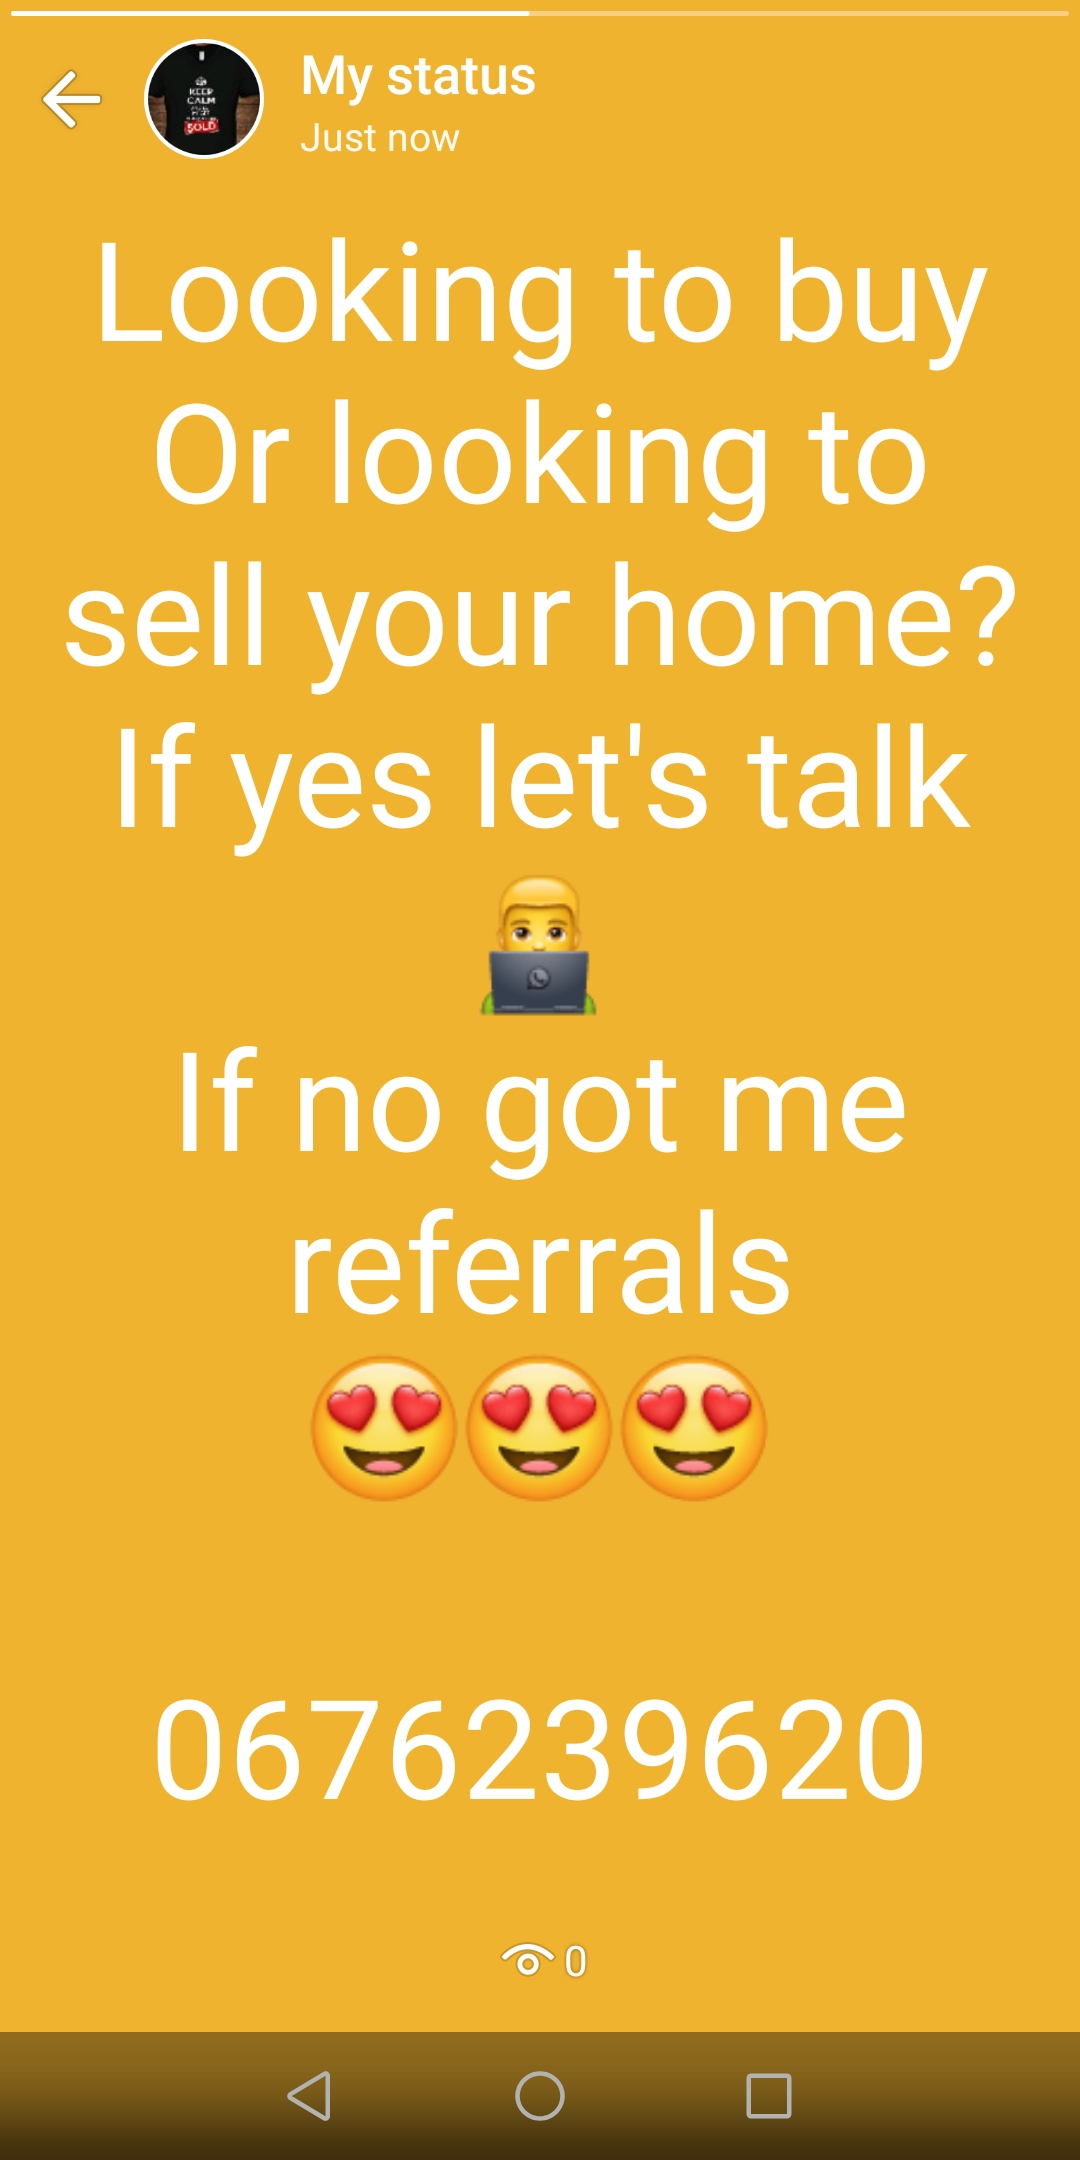 Thinking of selling, renting and buying contact me 0676239620